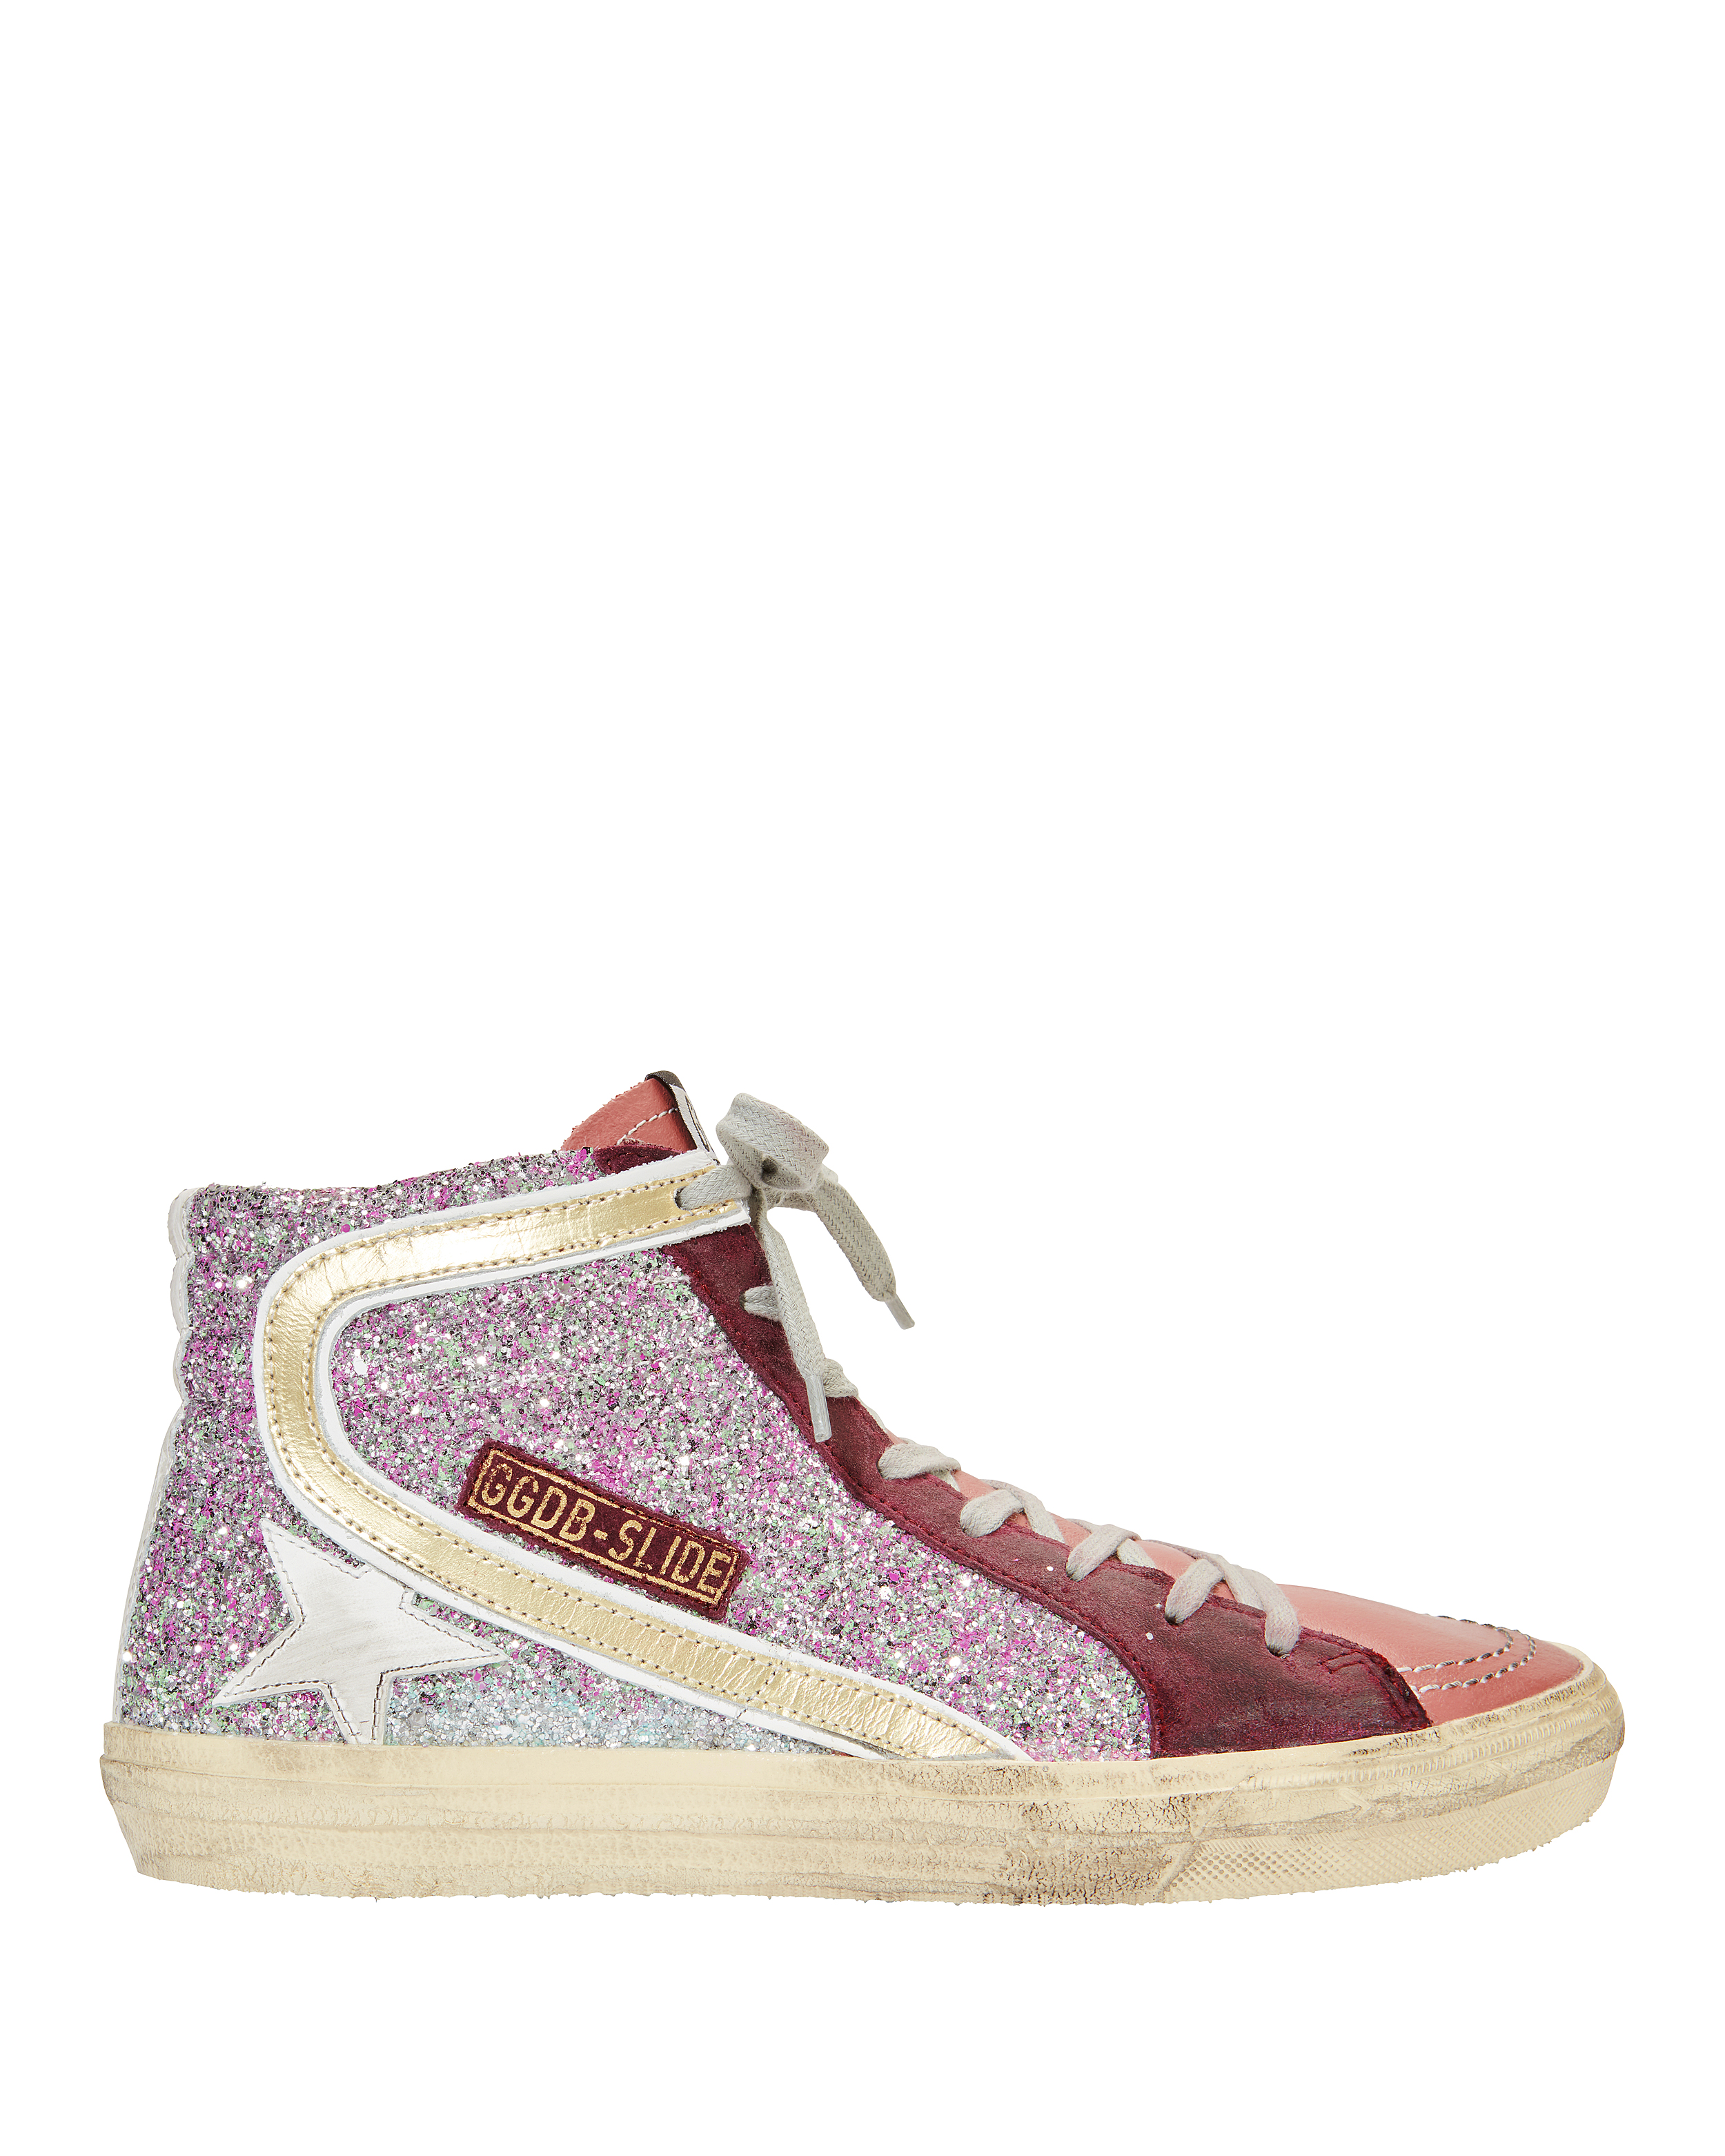 Cyclamin Pink Glitter High Top Sneakers